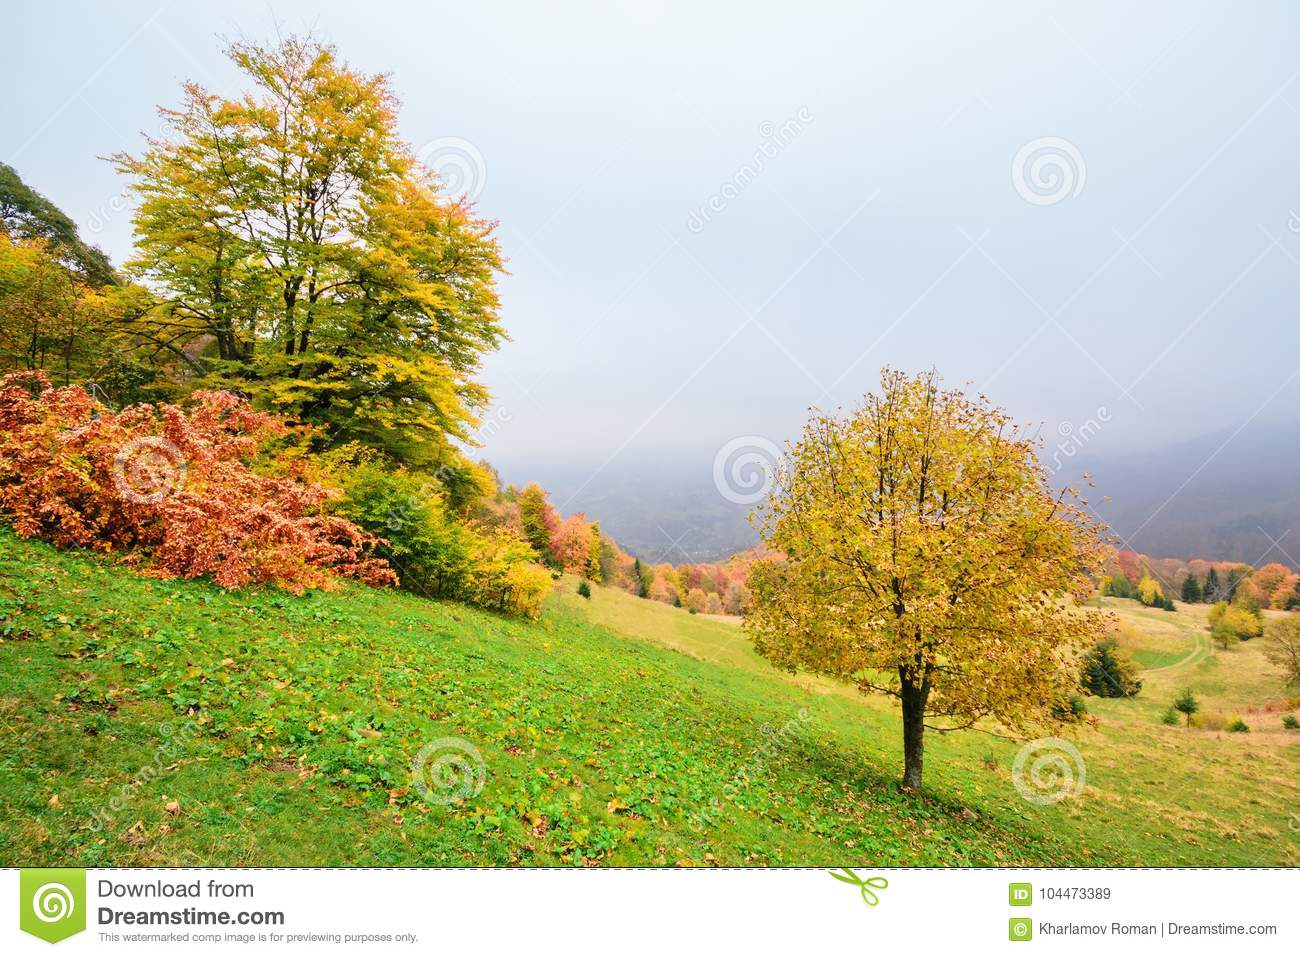 Picturesque autumn scenery in the mountains with meadow and colorful trees on foreground and fog above valley.